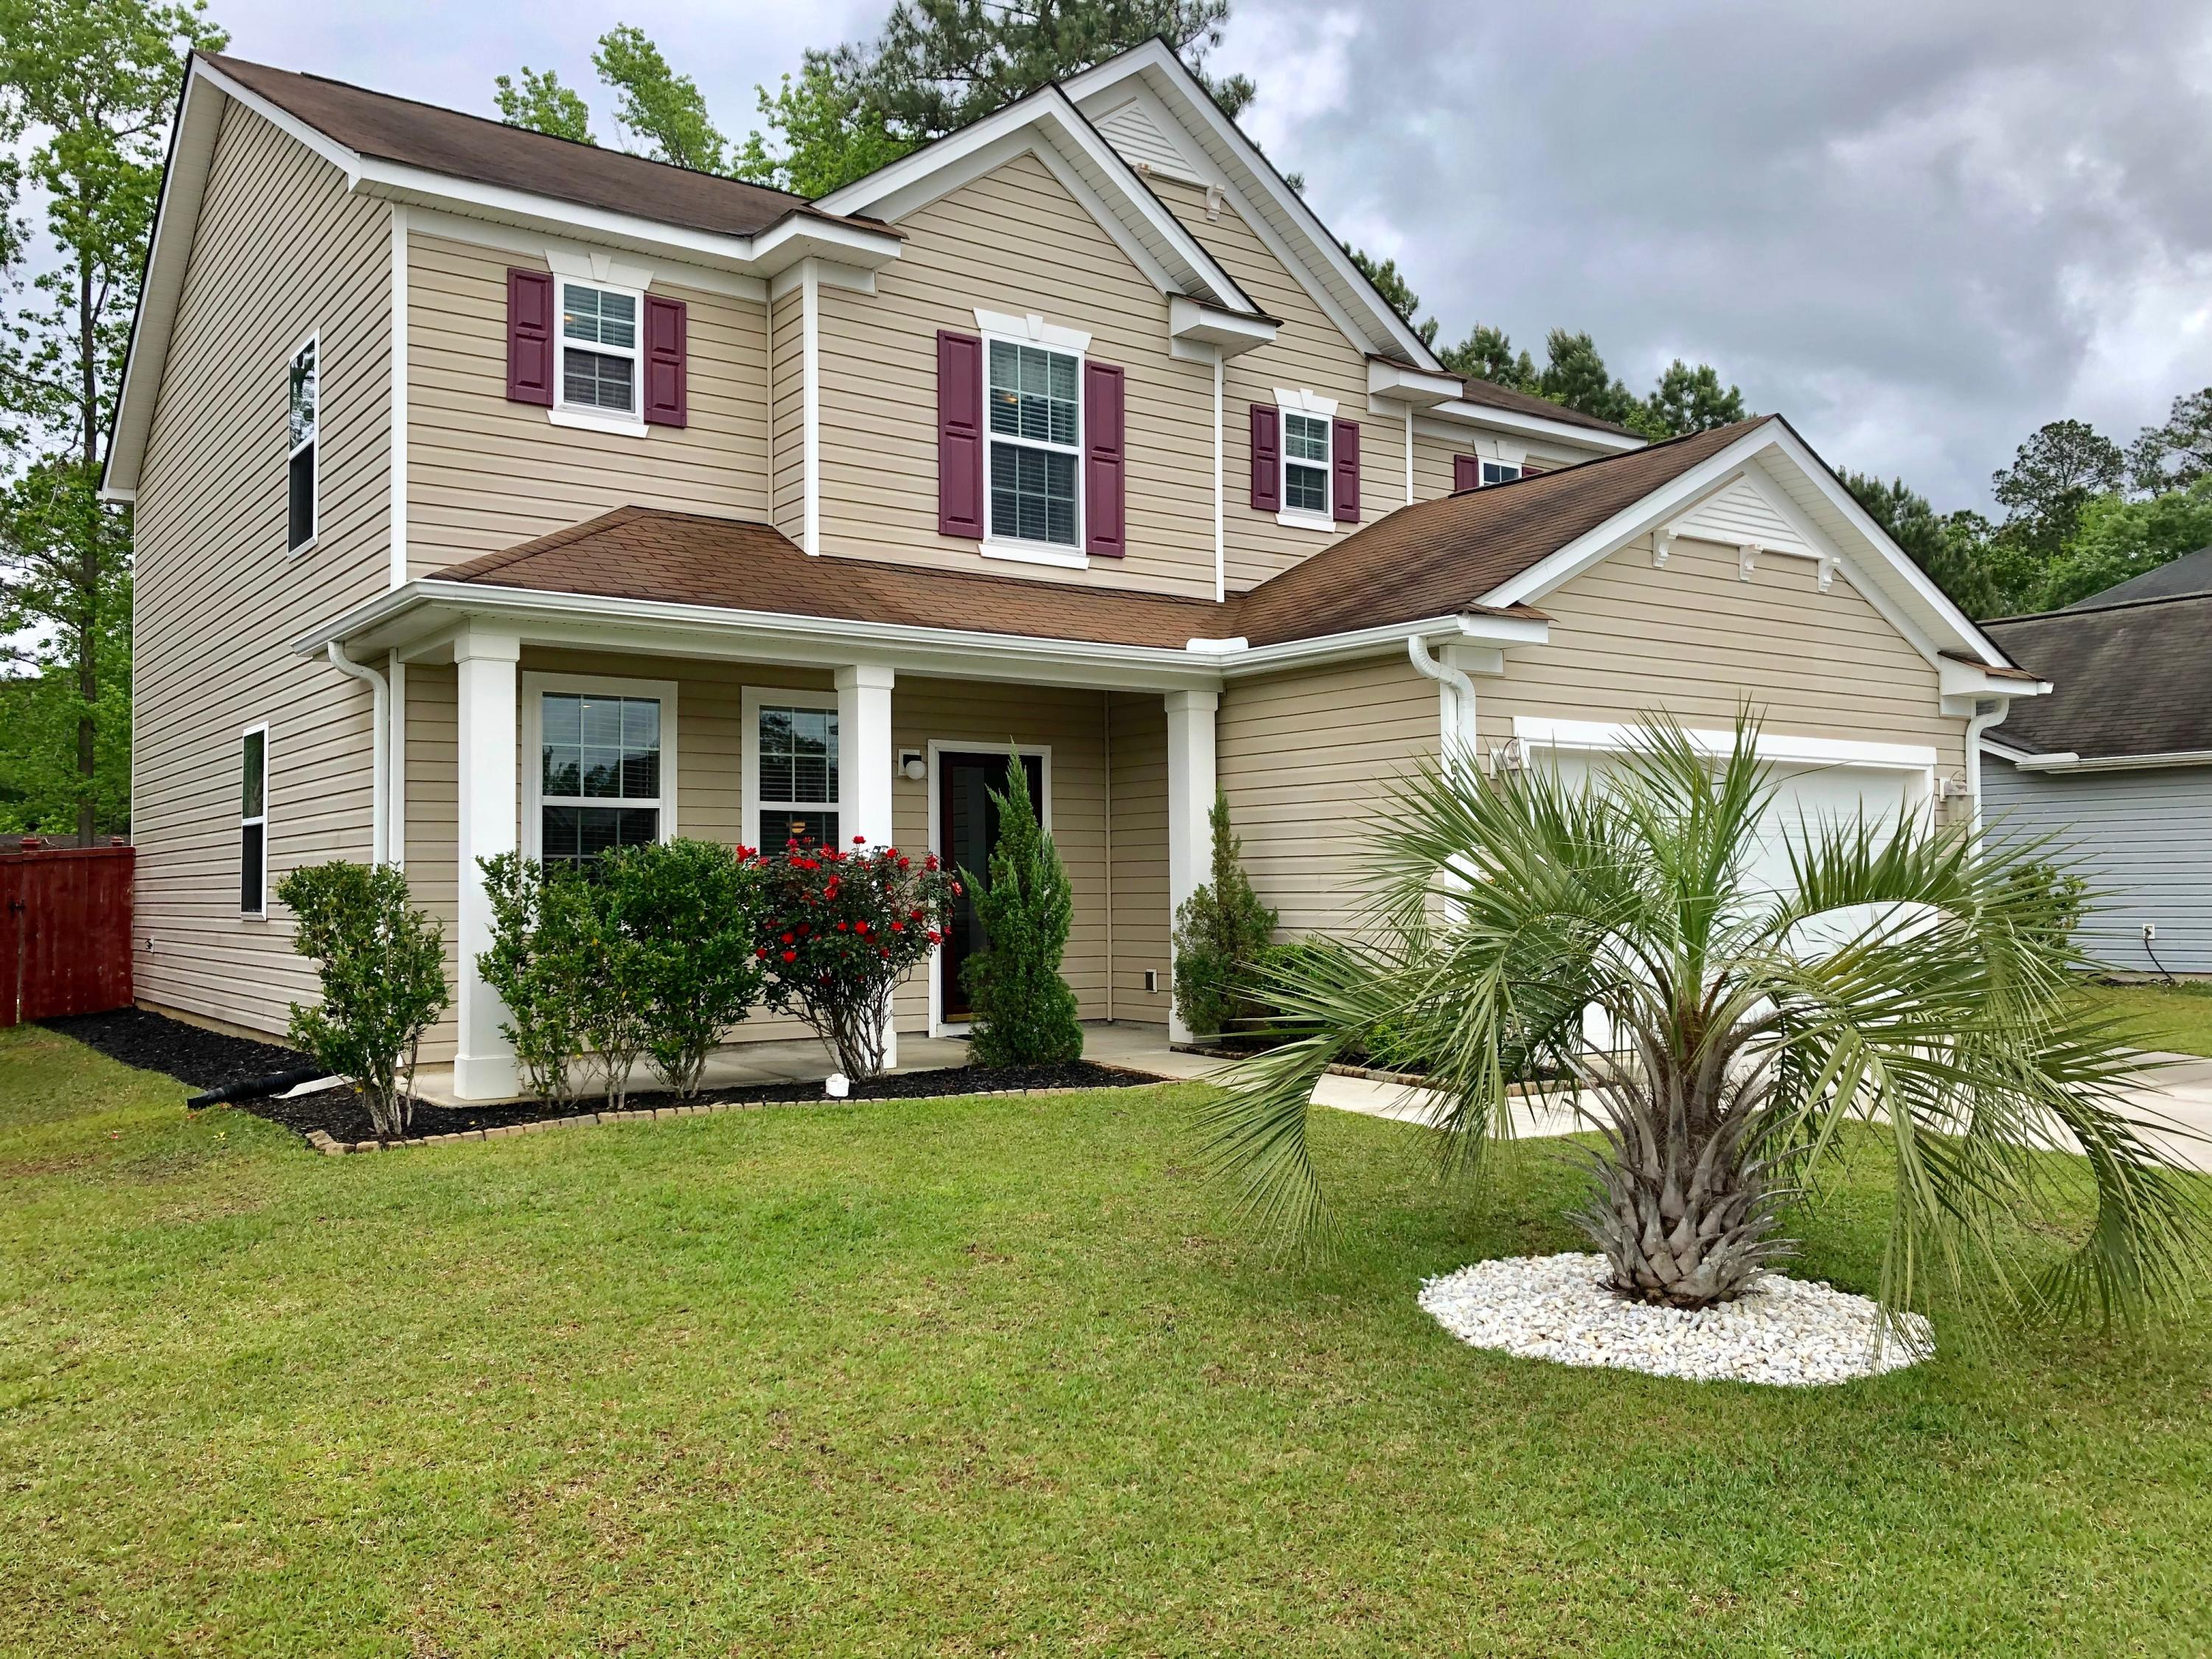 612 Grassy Hill Road Summerville, SC 29483